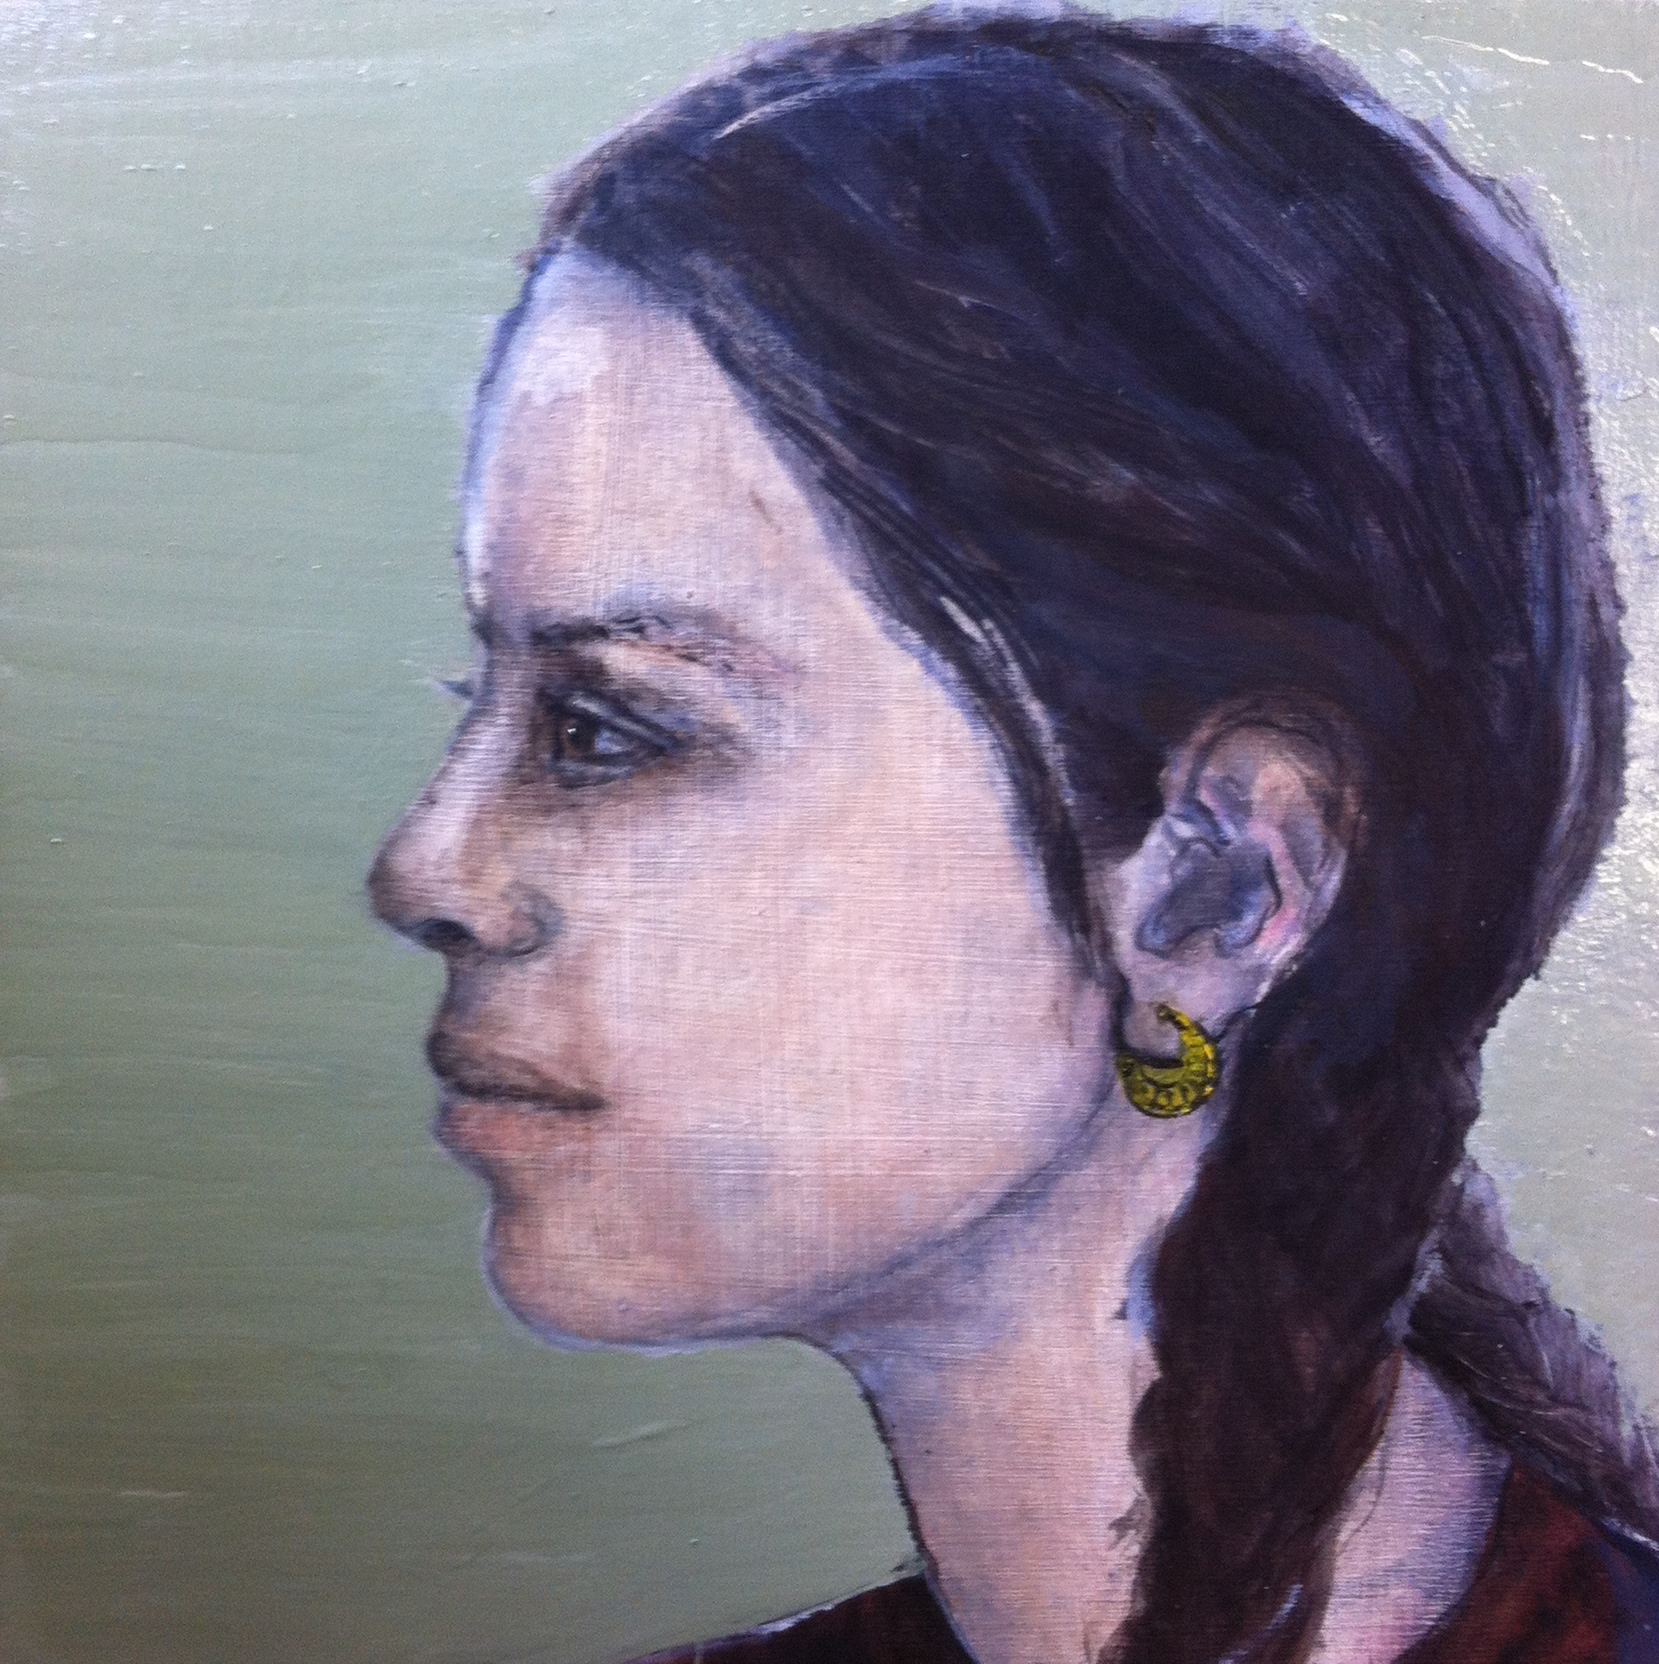 Mexican girl - Oil on board - Sold